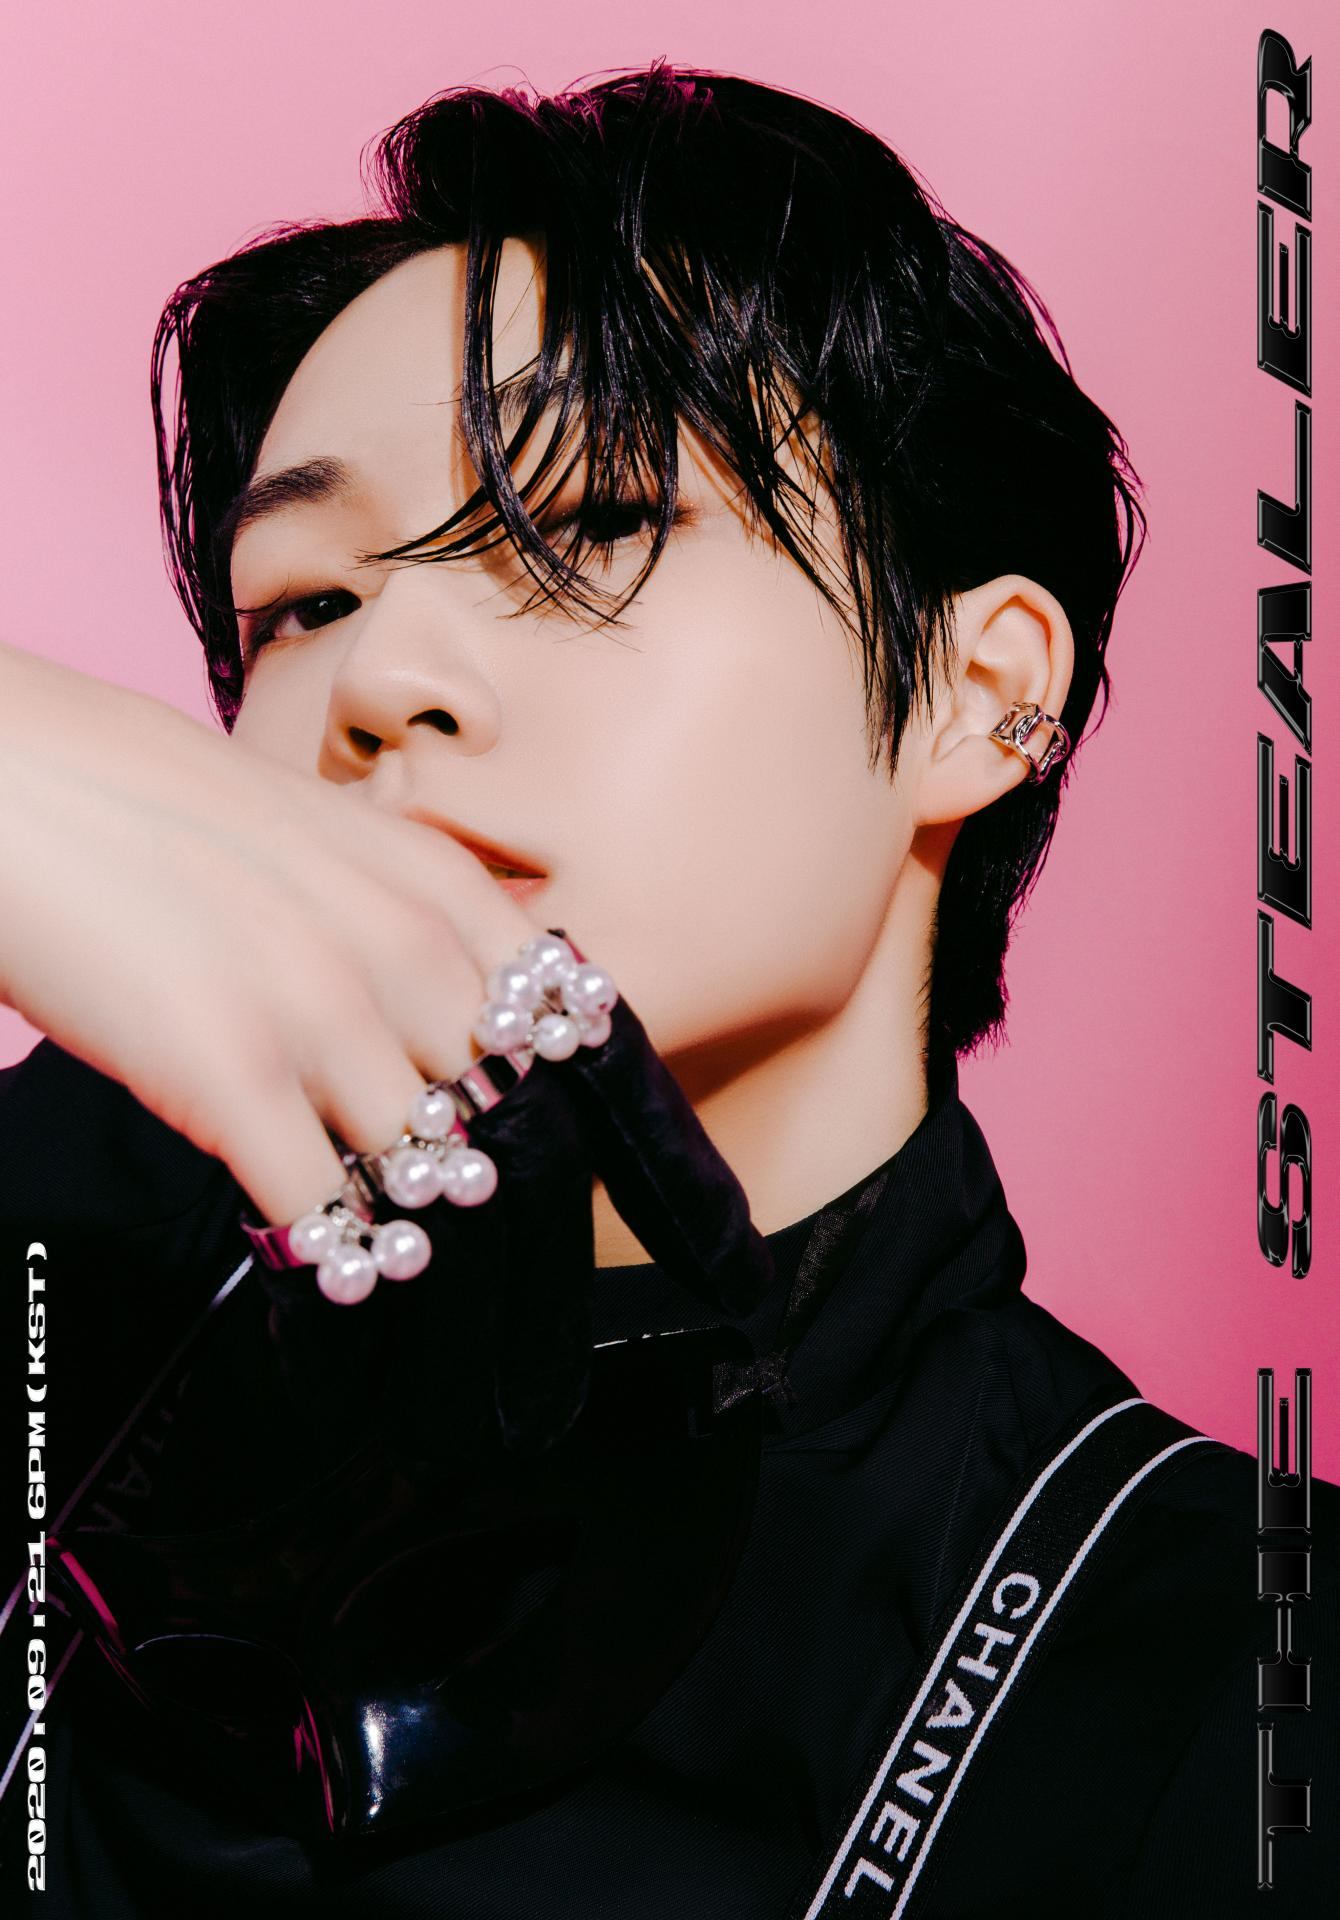 THE BOYZ 5TH MINI ALBUM [CHASE] CONCEPT 照片 2